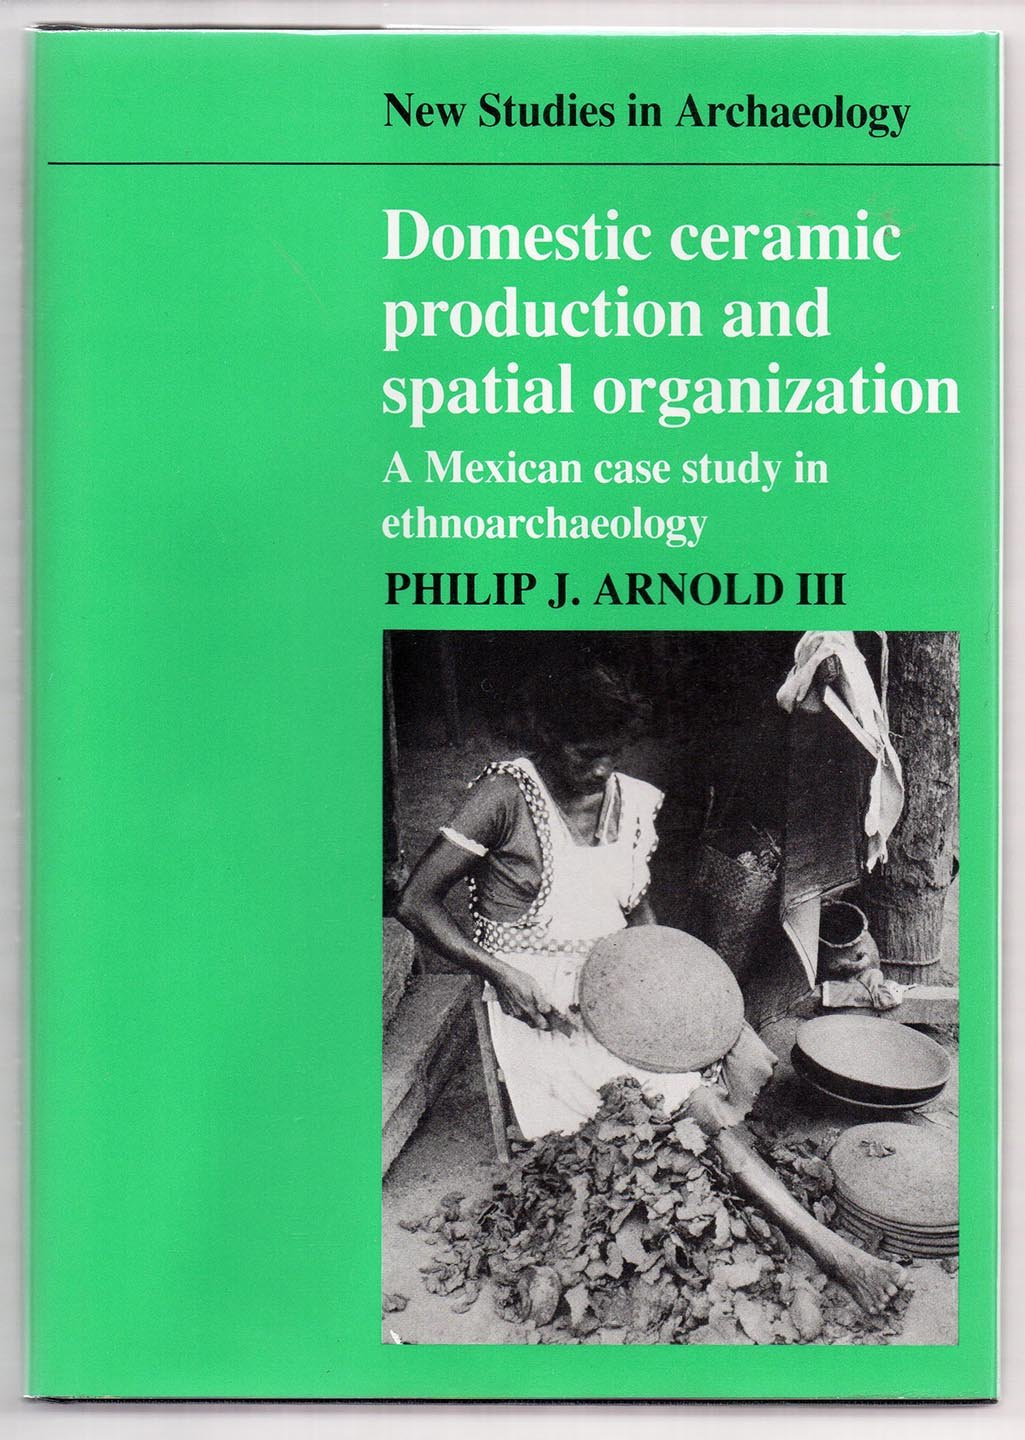 Domestic ceramic production and spatial organization: A Mexican case study in ethnoarchaeology